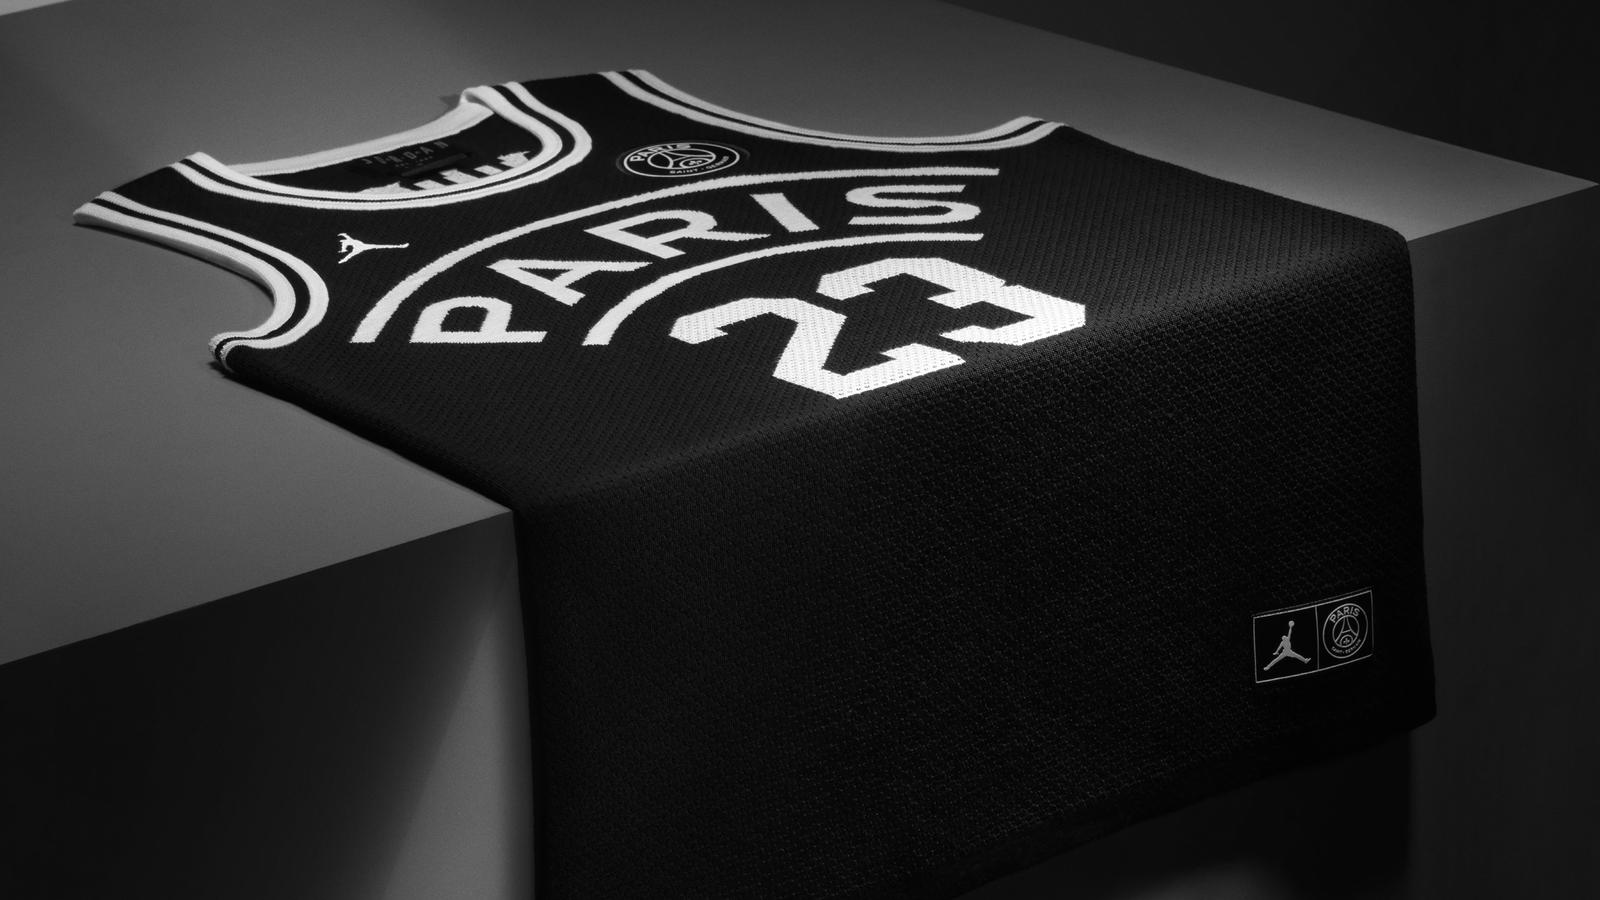 1629aca8c6d2a1 The Jordan Brand x Paris Saint-Germain collection releases on September 14  and the team will debut its Jordan kit on September 18 in the Champions  League.